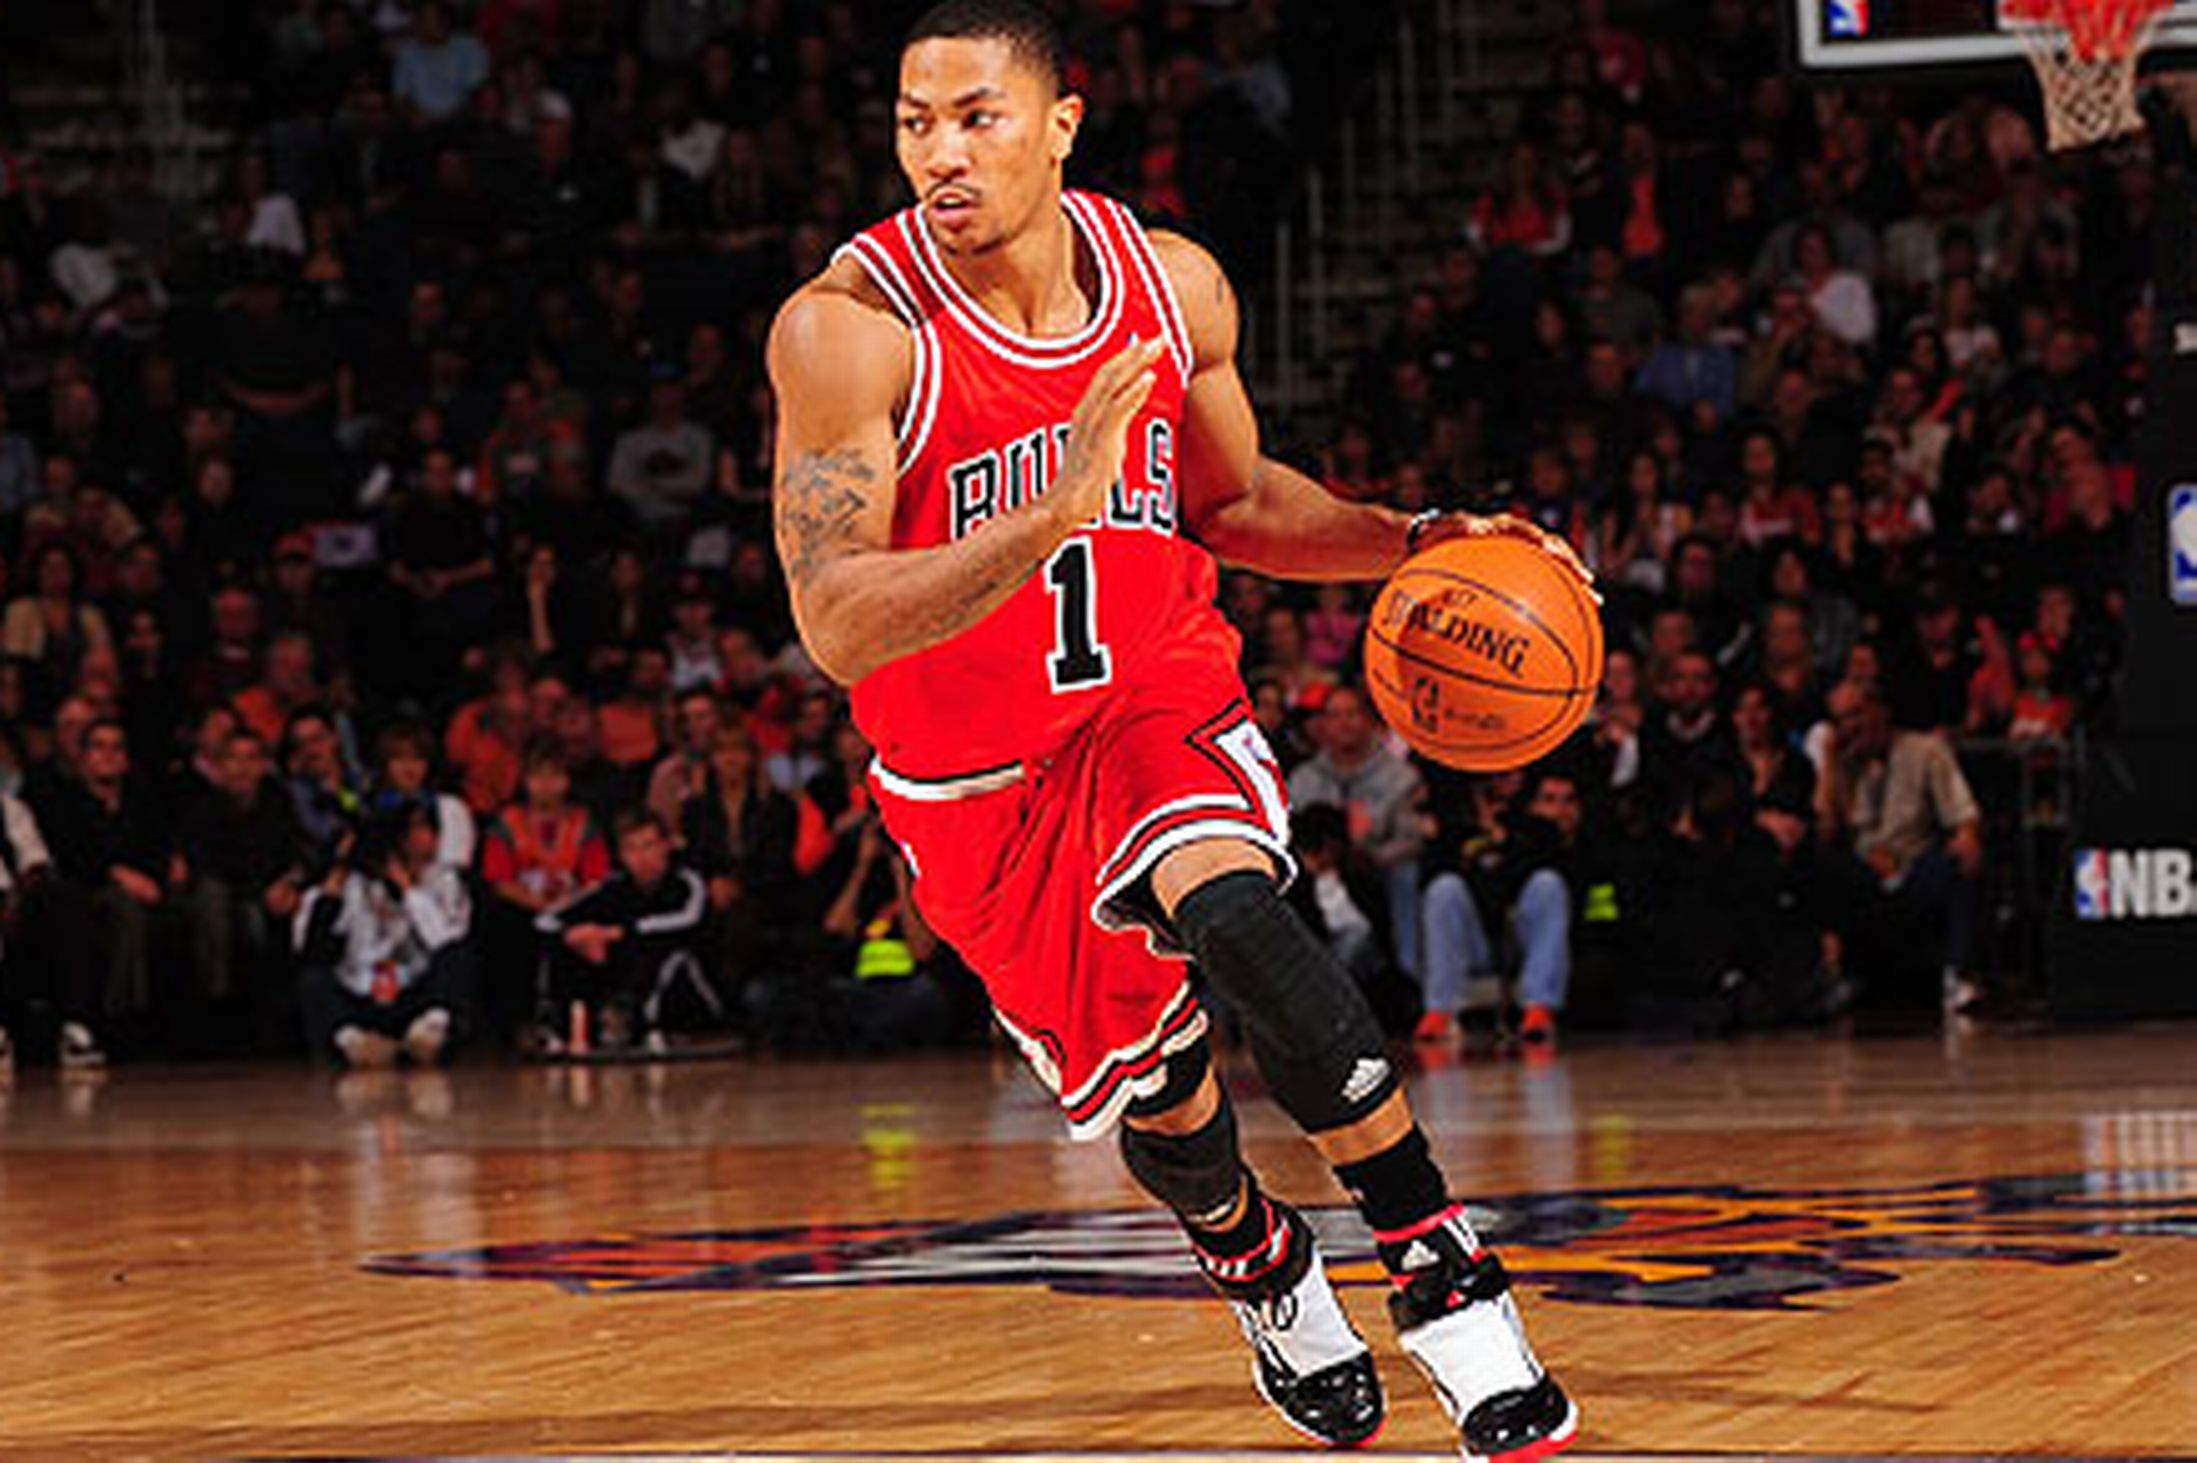 da3cfb2ae282 Derrick Rose to undergo surgery for torn meniscus